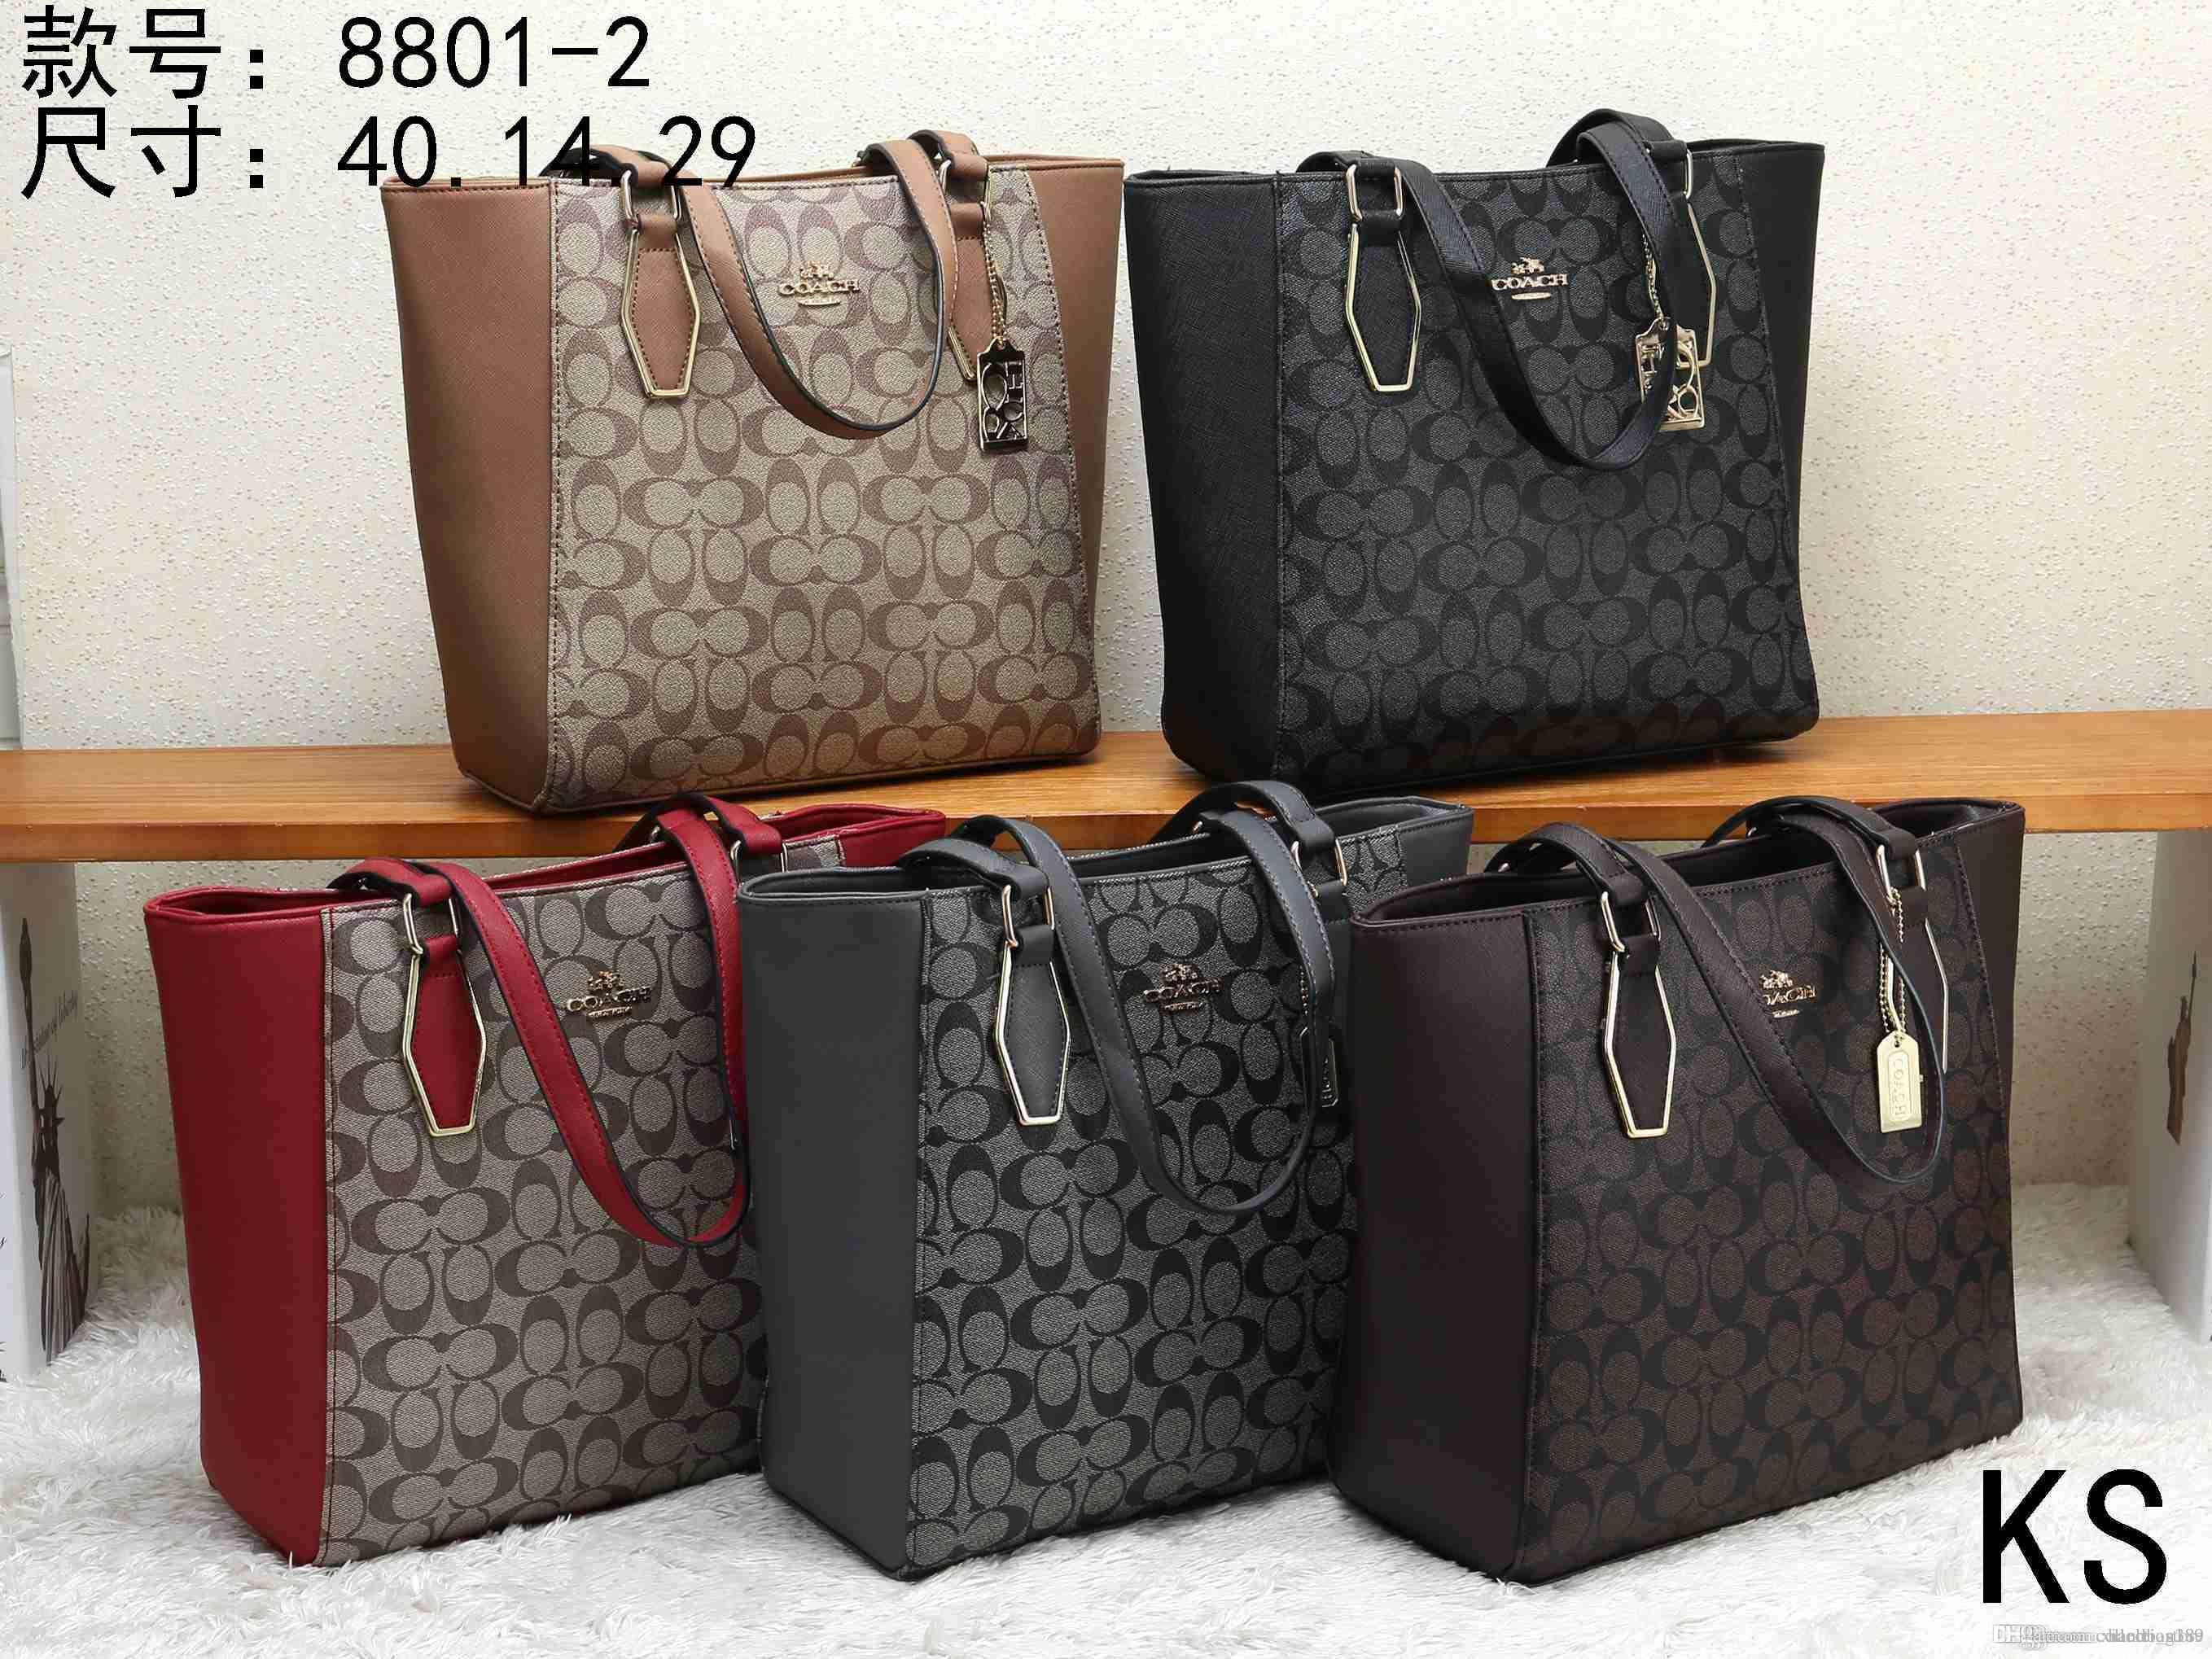 e1ad1701bc80 2019 MK 8801 2 KS NEW Styles Fashion Bags Ladies Handbags Designer Bags  Women Tote Bag Luxury Brands Bags Single Shoulder Bag From Collection389,  ...